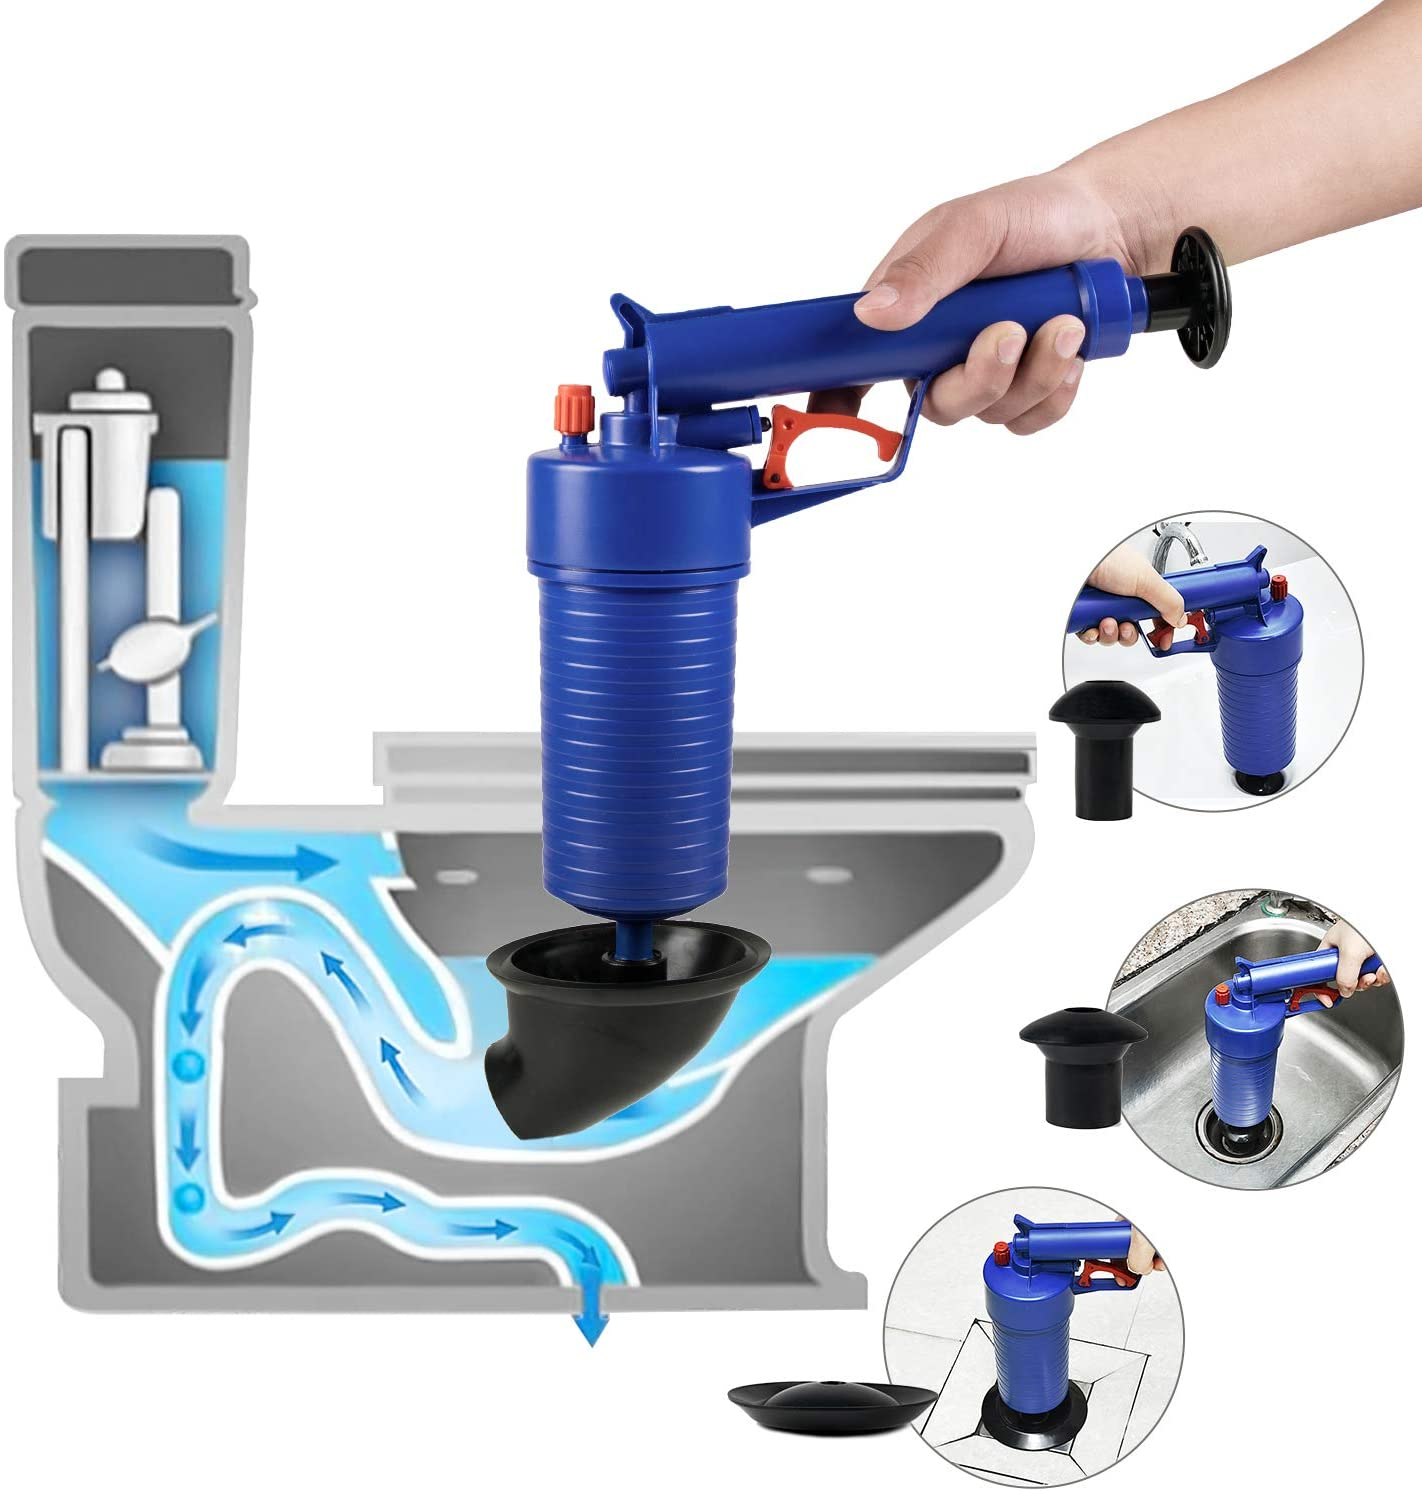 ETERNA Air Drain Blaster, Sink Plunger, Air Power Toilet Plunger ...